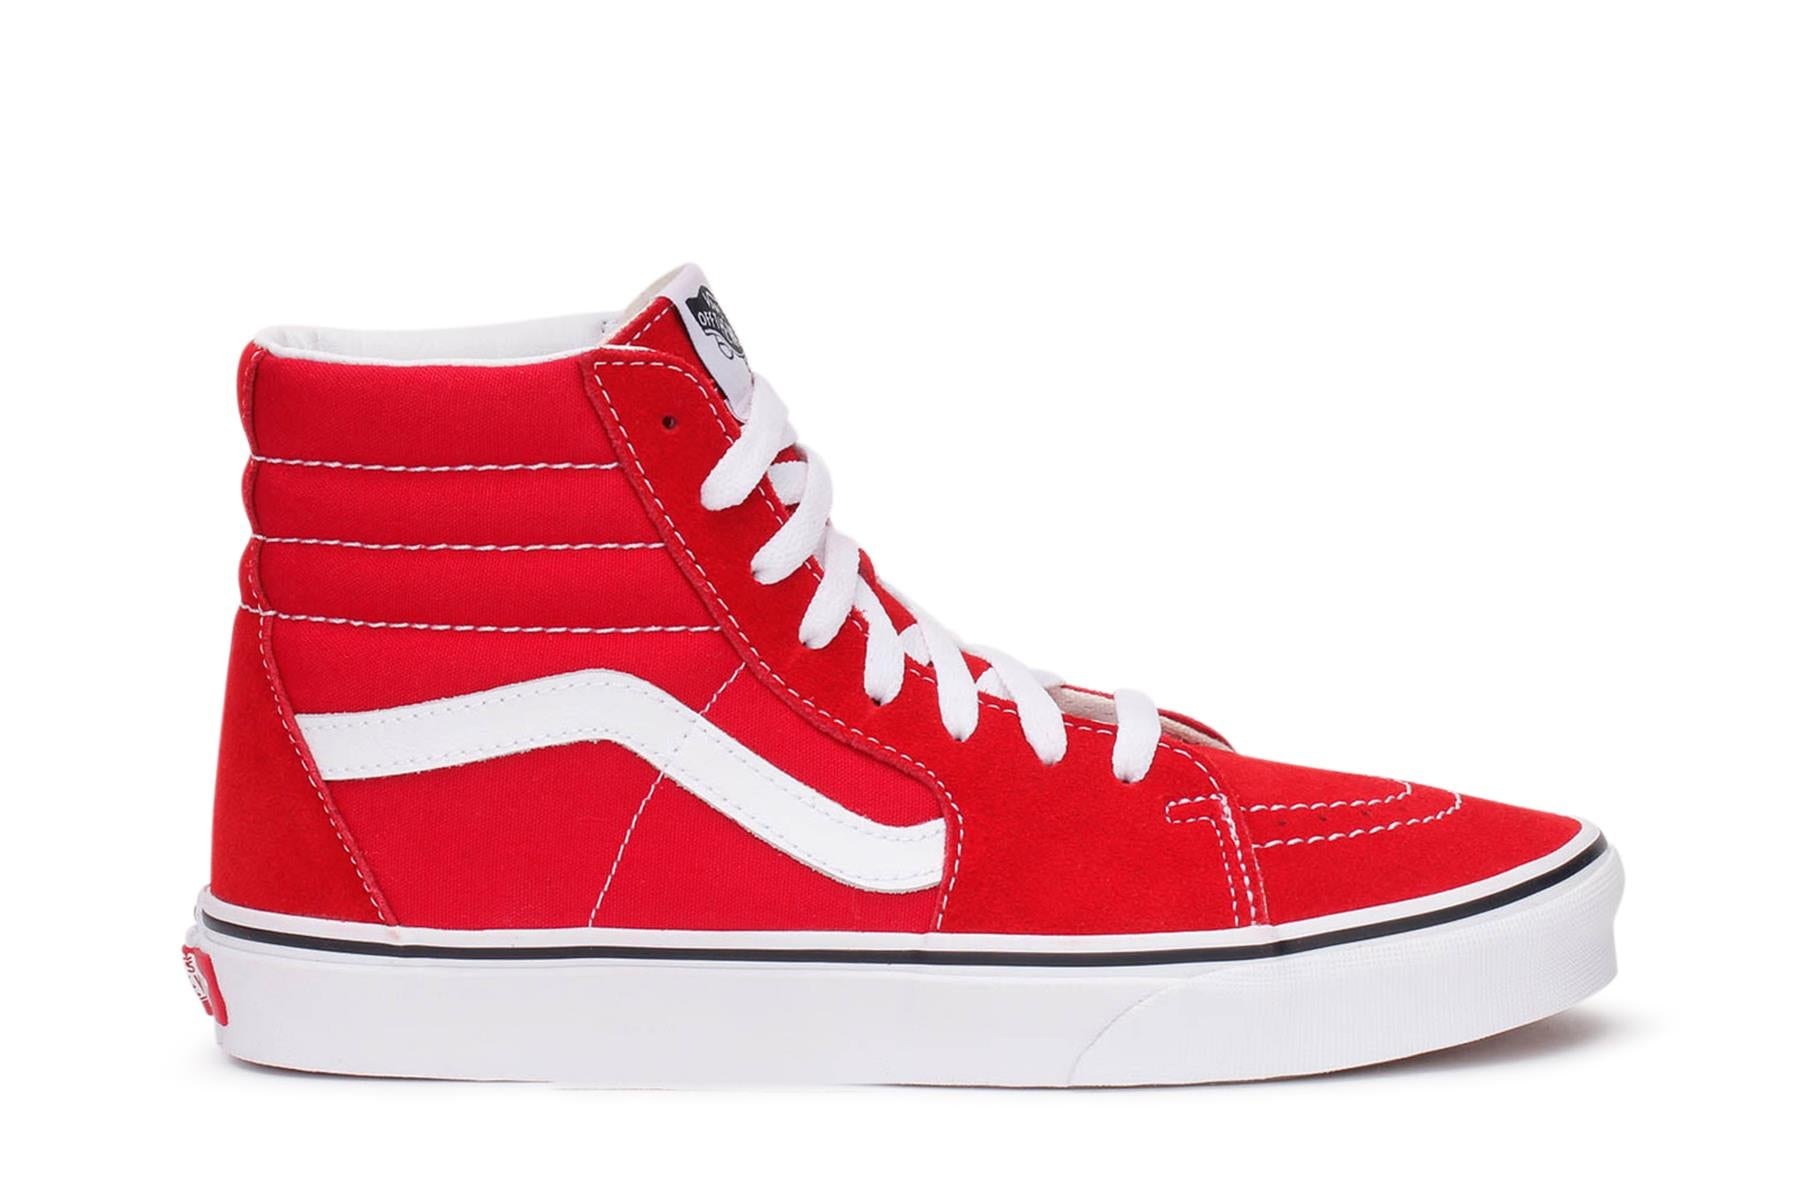 vans-mens-sk8-hi-sneakers-racing-red-true-white-vn0a4bv6jv6-main